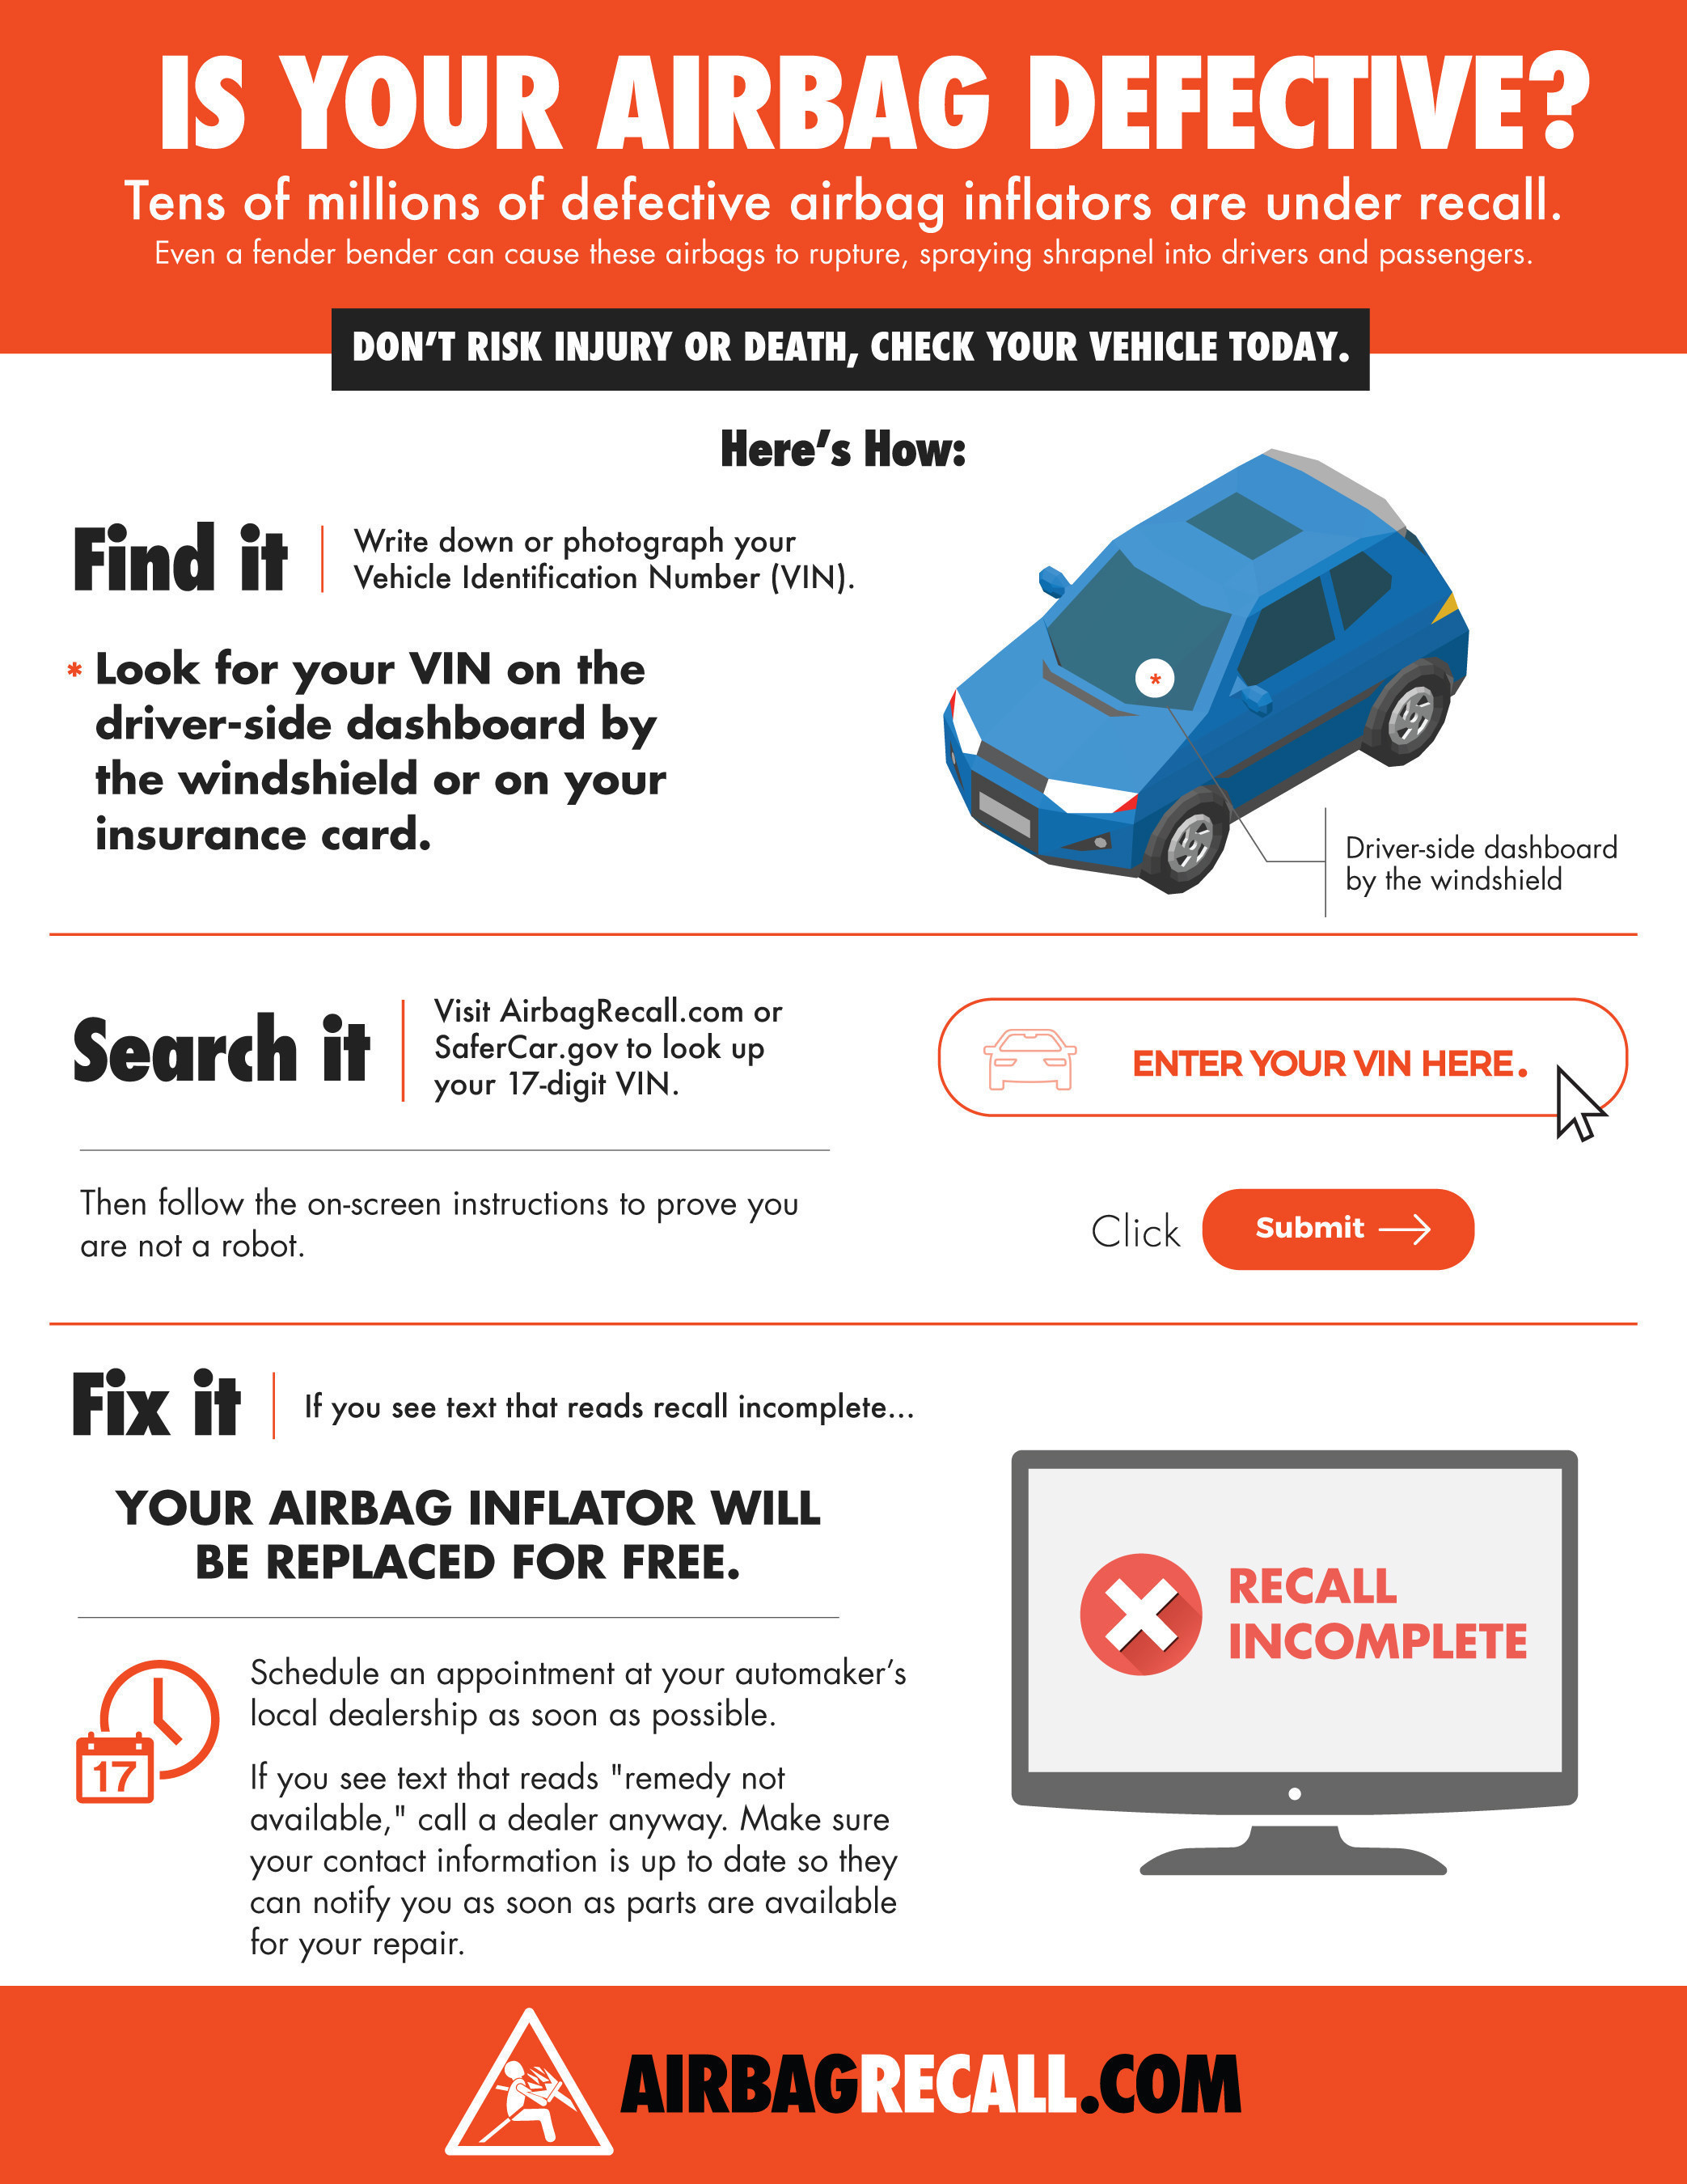 Tens of millions of defective airbag inflators are under recall. Don't risk injury or death, check your vehicle today.